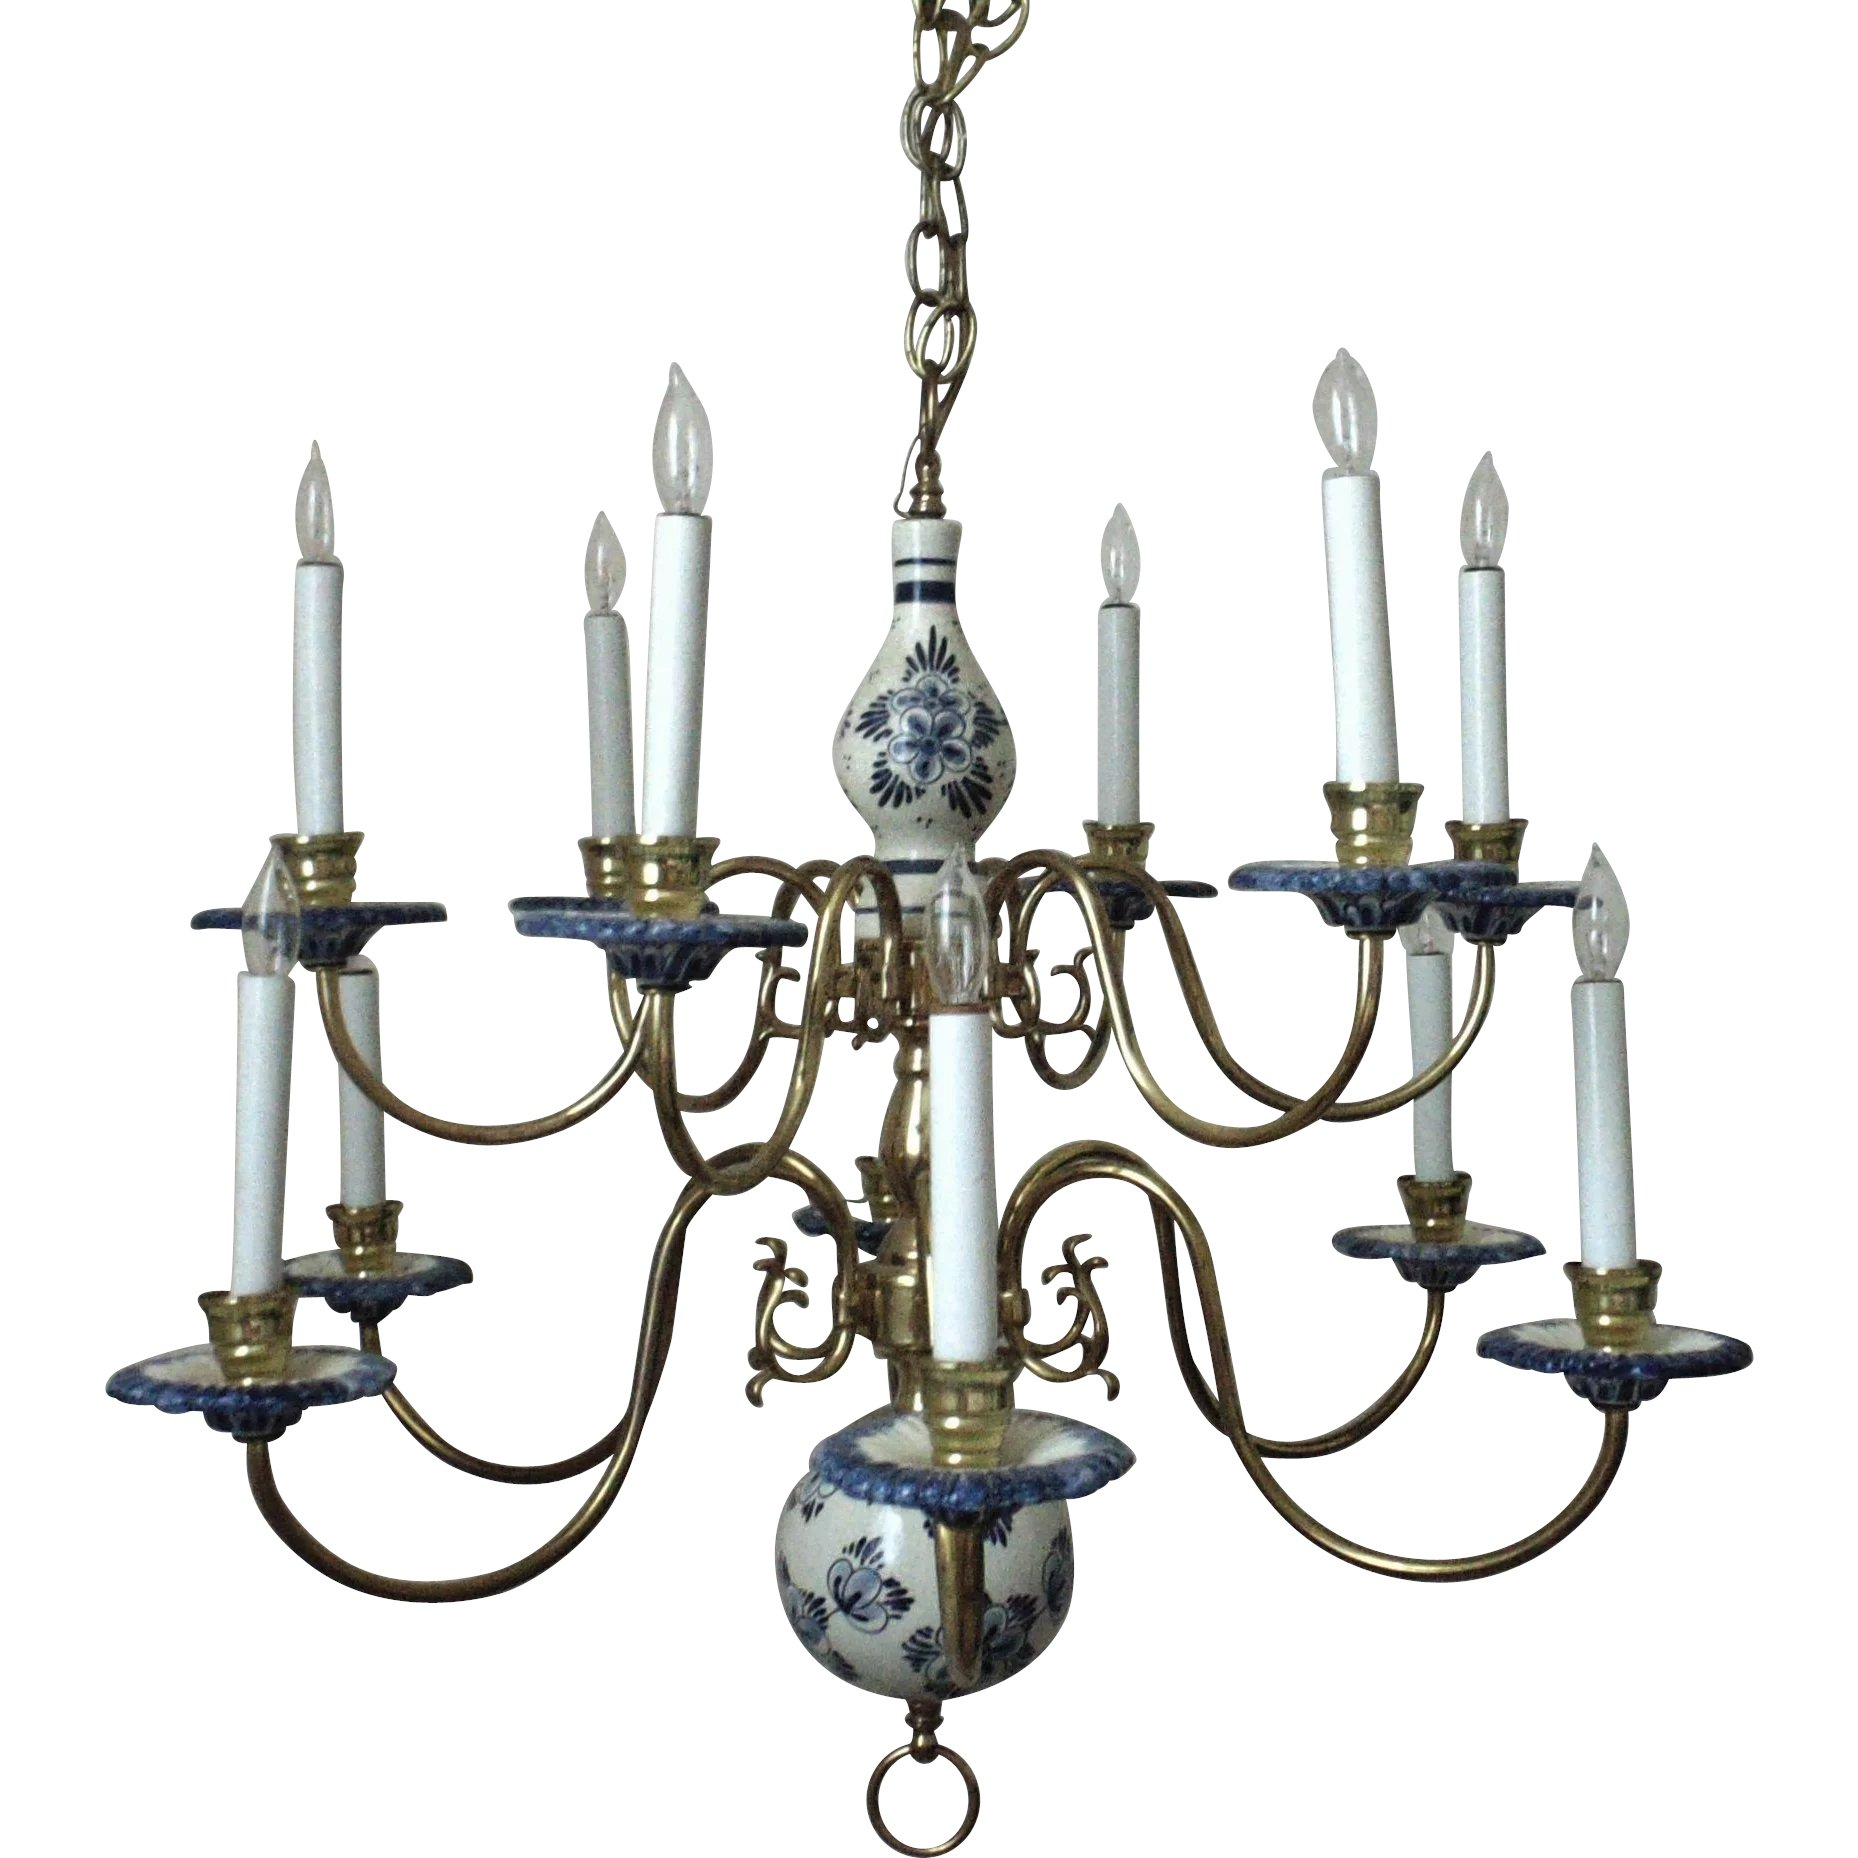 Superb vintage delft chandelier two tier blue white pottery superb vintage delft chandelier two tier blue white pottery brass coyote moon antiques ruby lane mozeypictures Gallery